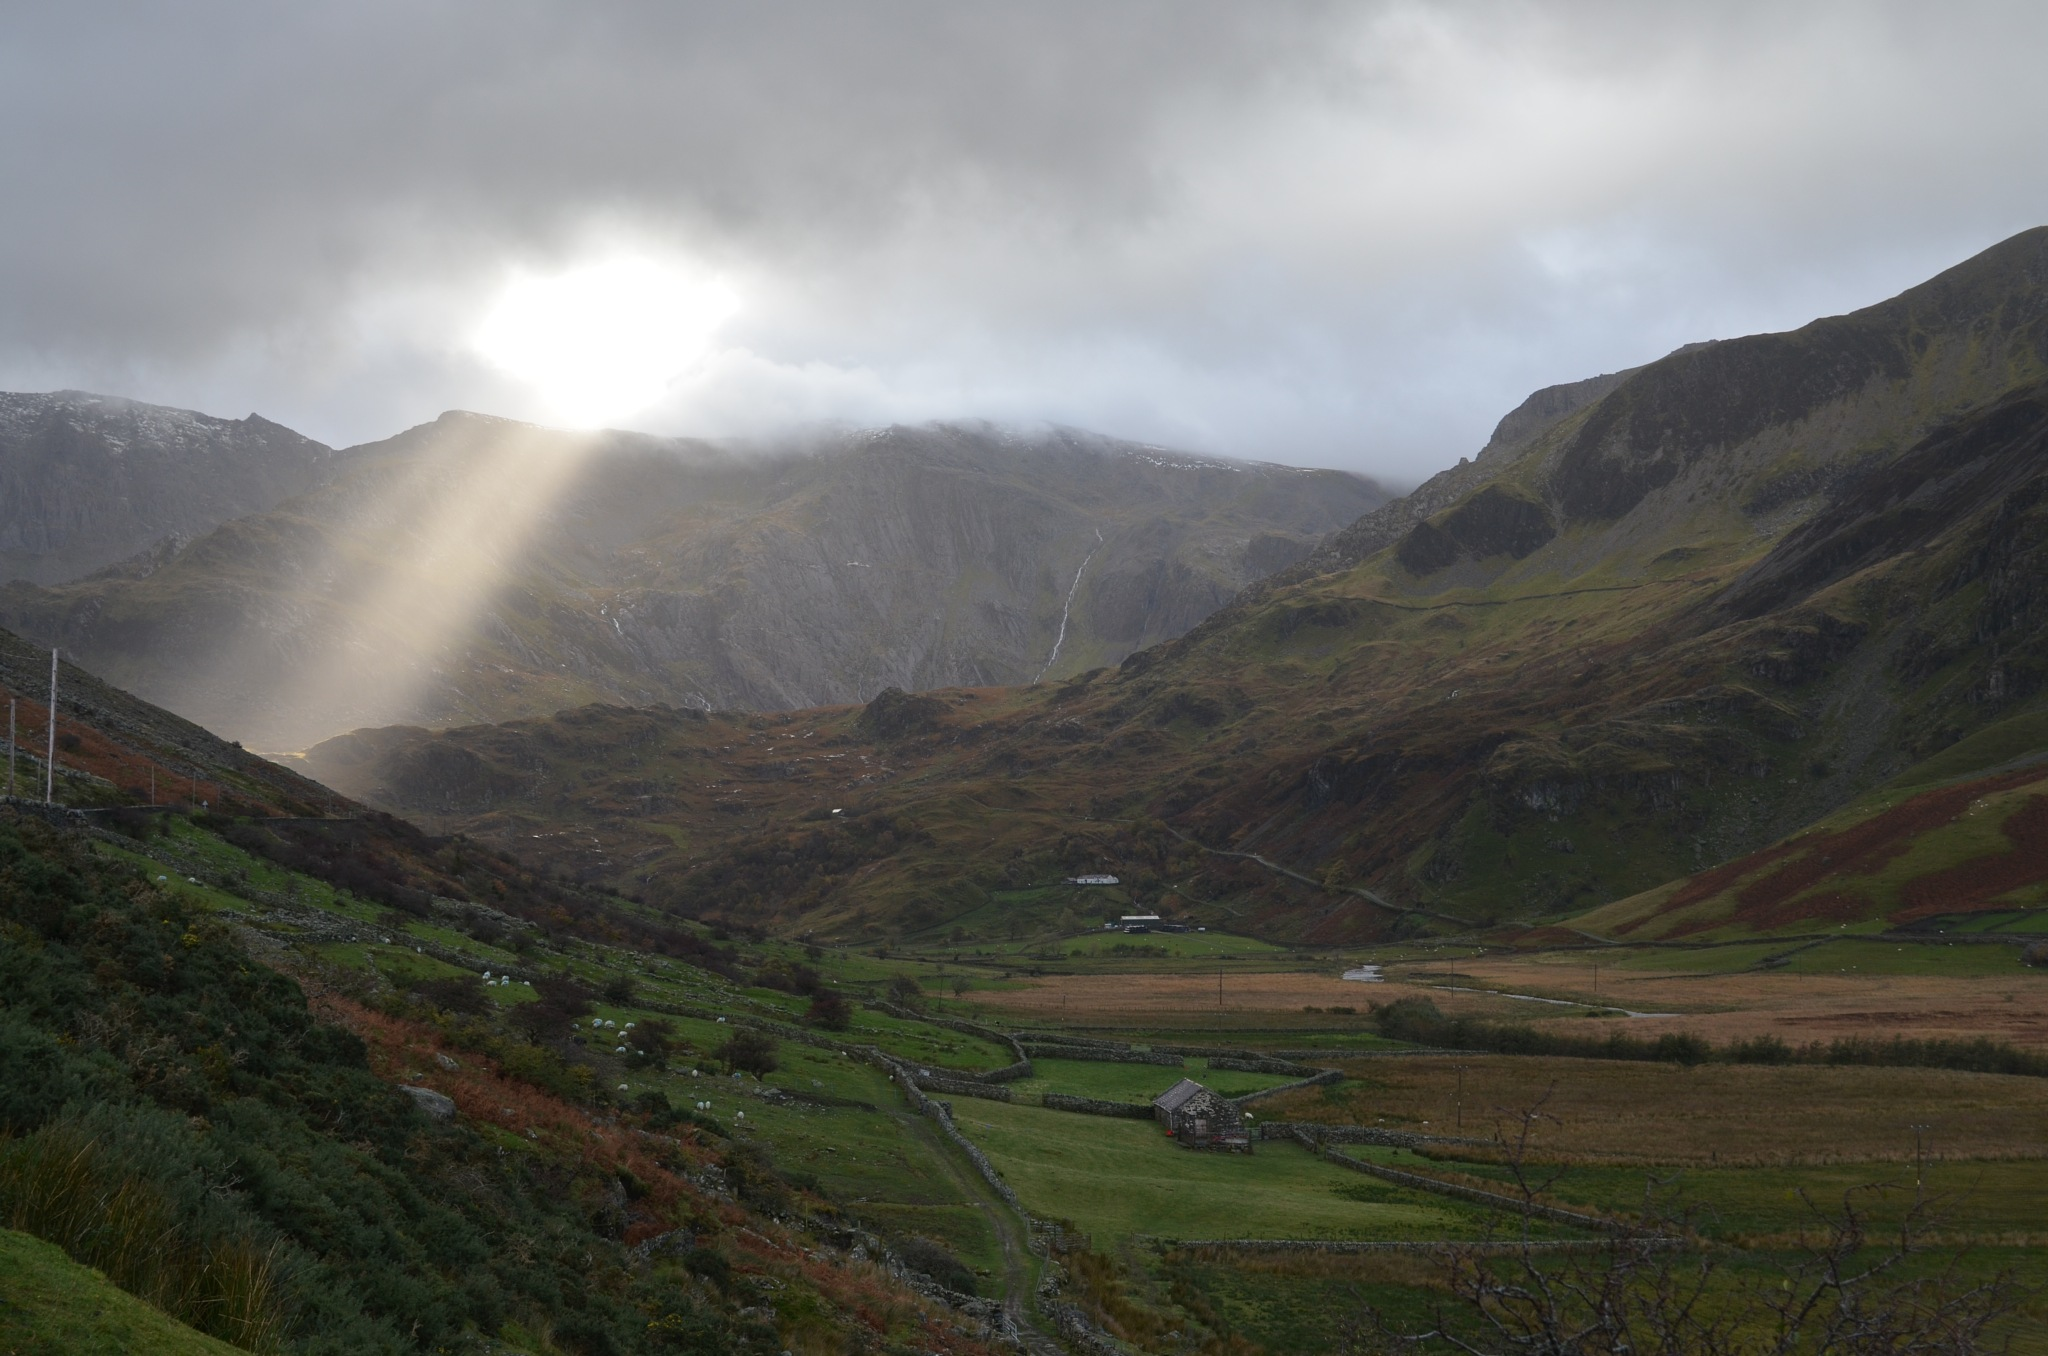 sunlight breaking through  the cloads Ogwen Valley by adrian.williams.58323